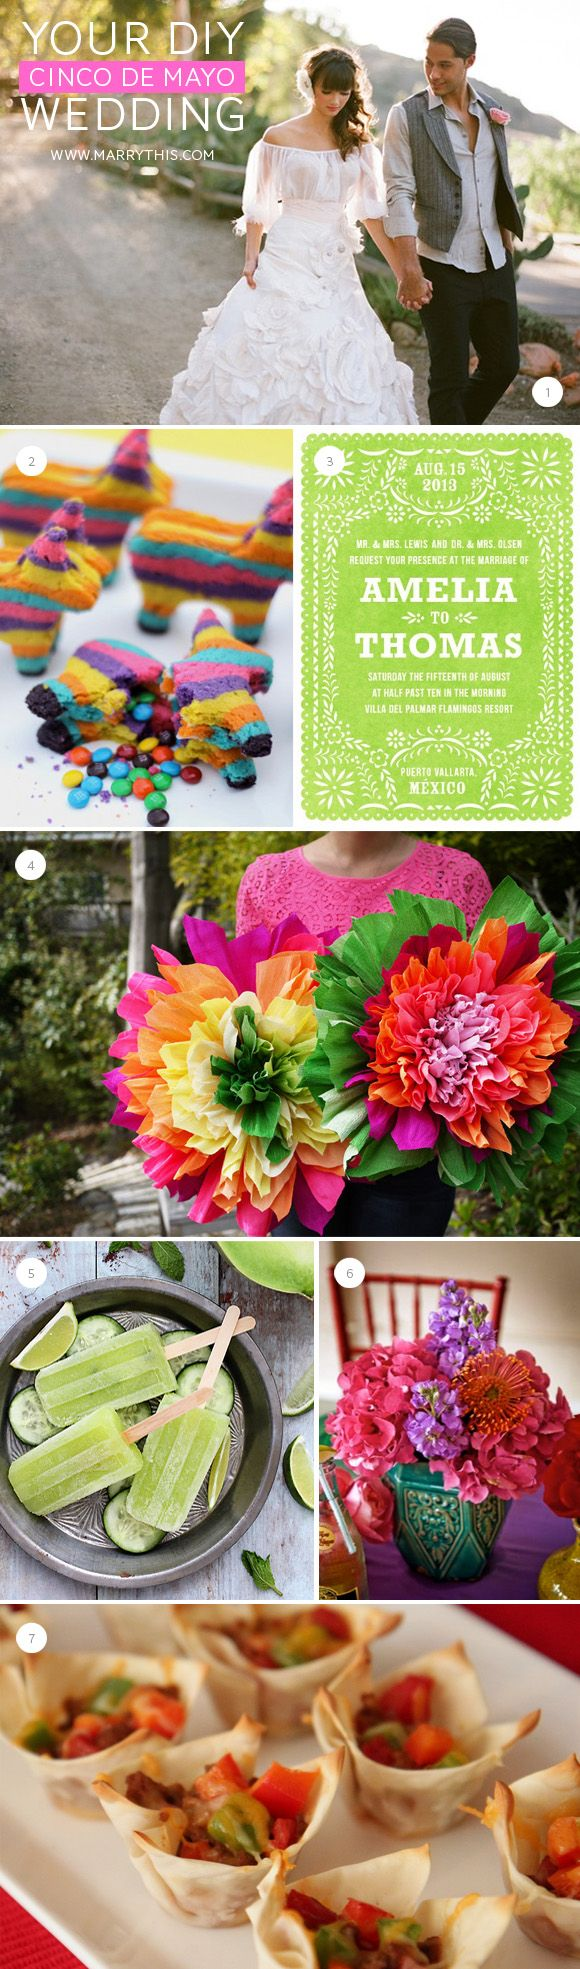 DIY Cinco de Mayo Wedding Roundup | Alfred and Fatima's ...